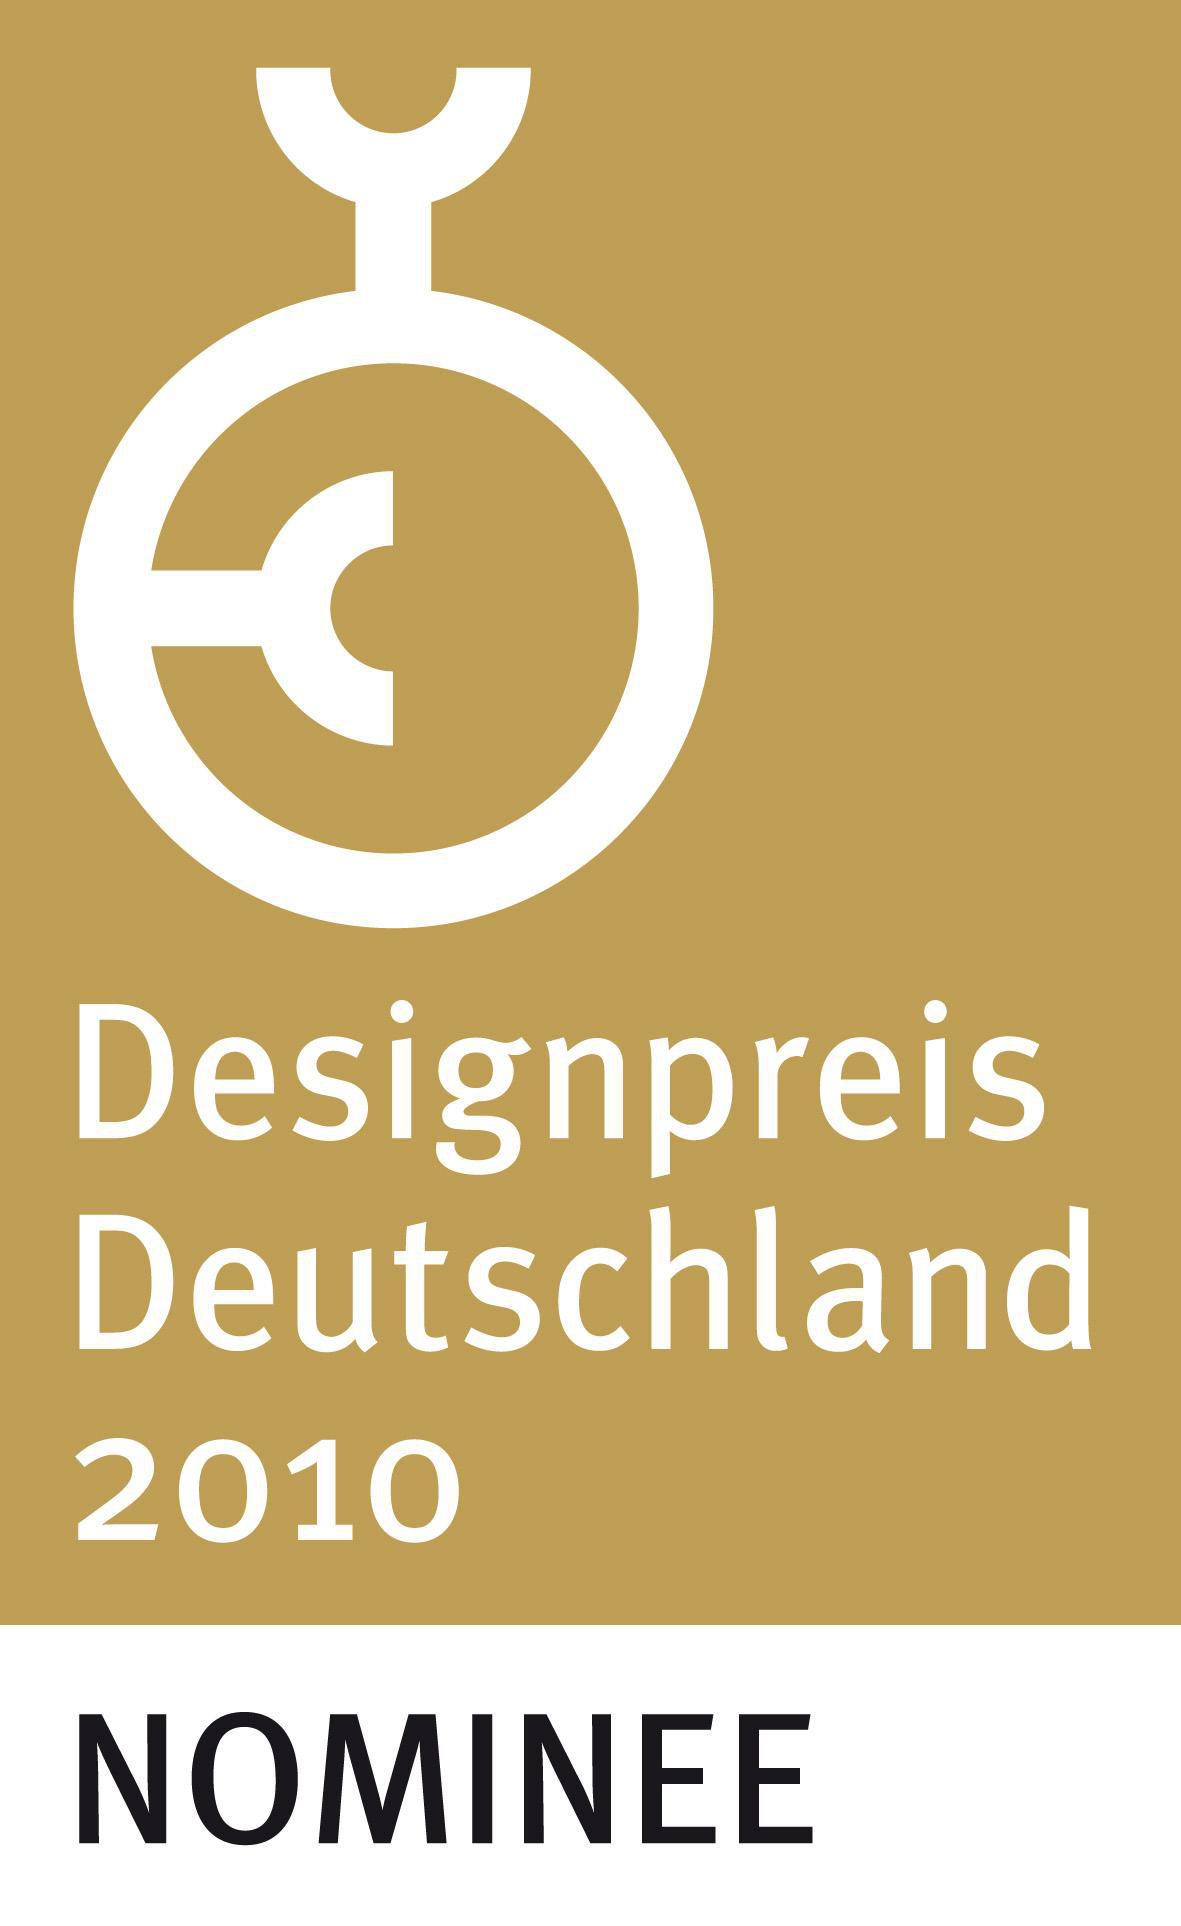 Designpreis Germany 2010 Nominee (DE)